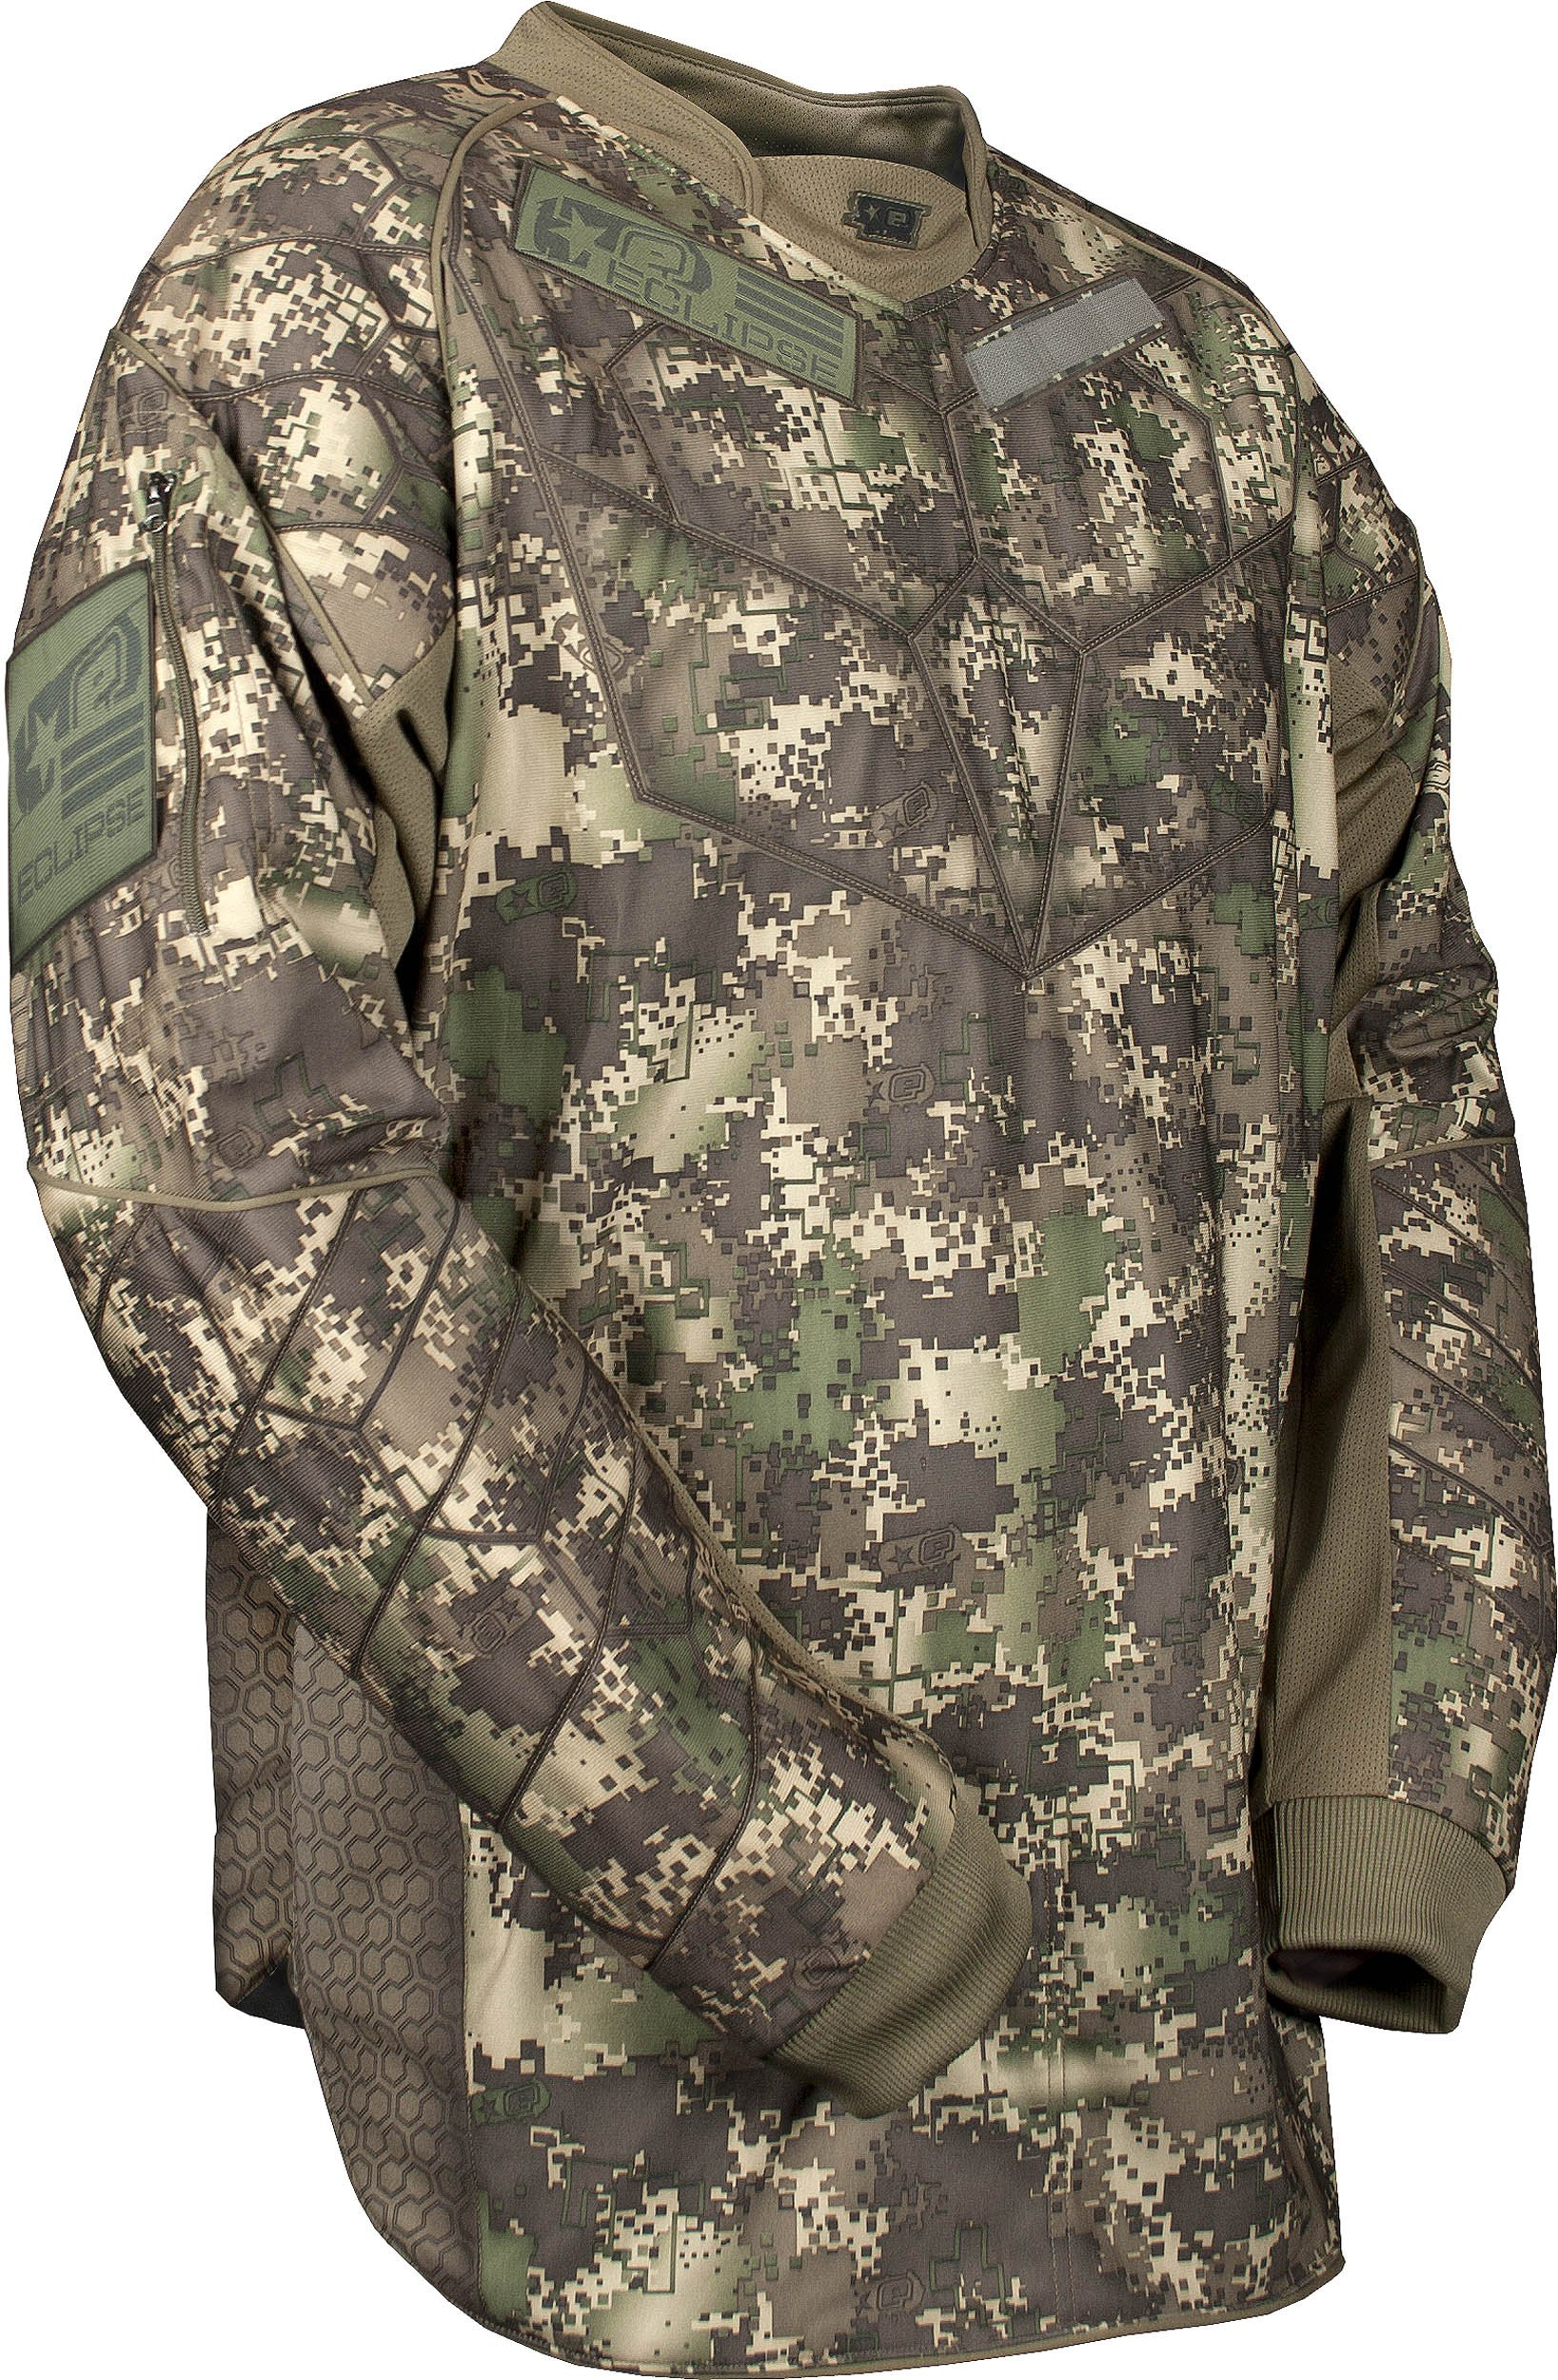 Planet Eclipse HDE Jersey - Camo - Medium by Planet Eclipse